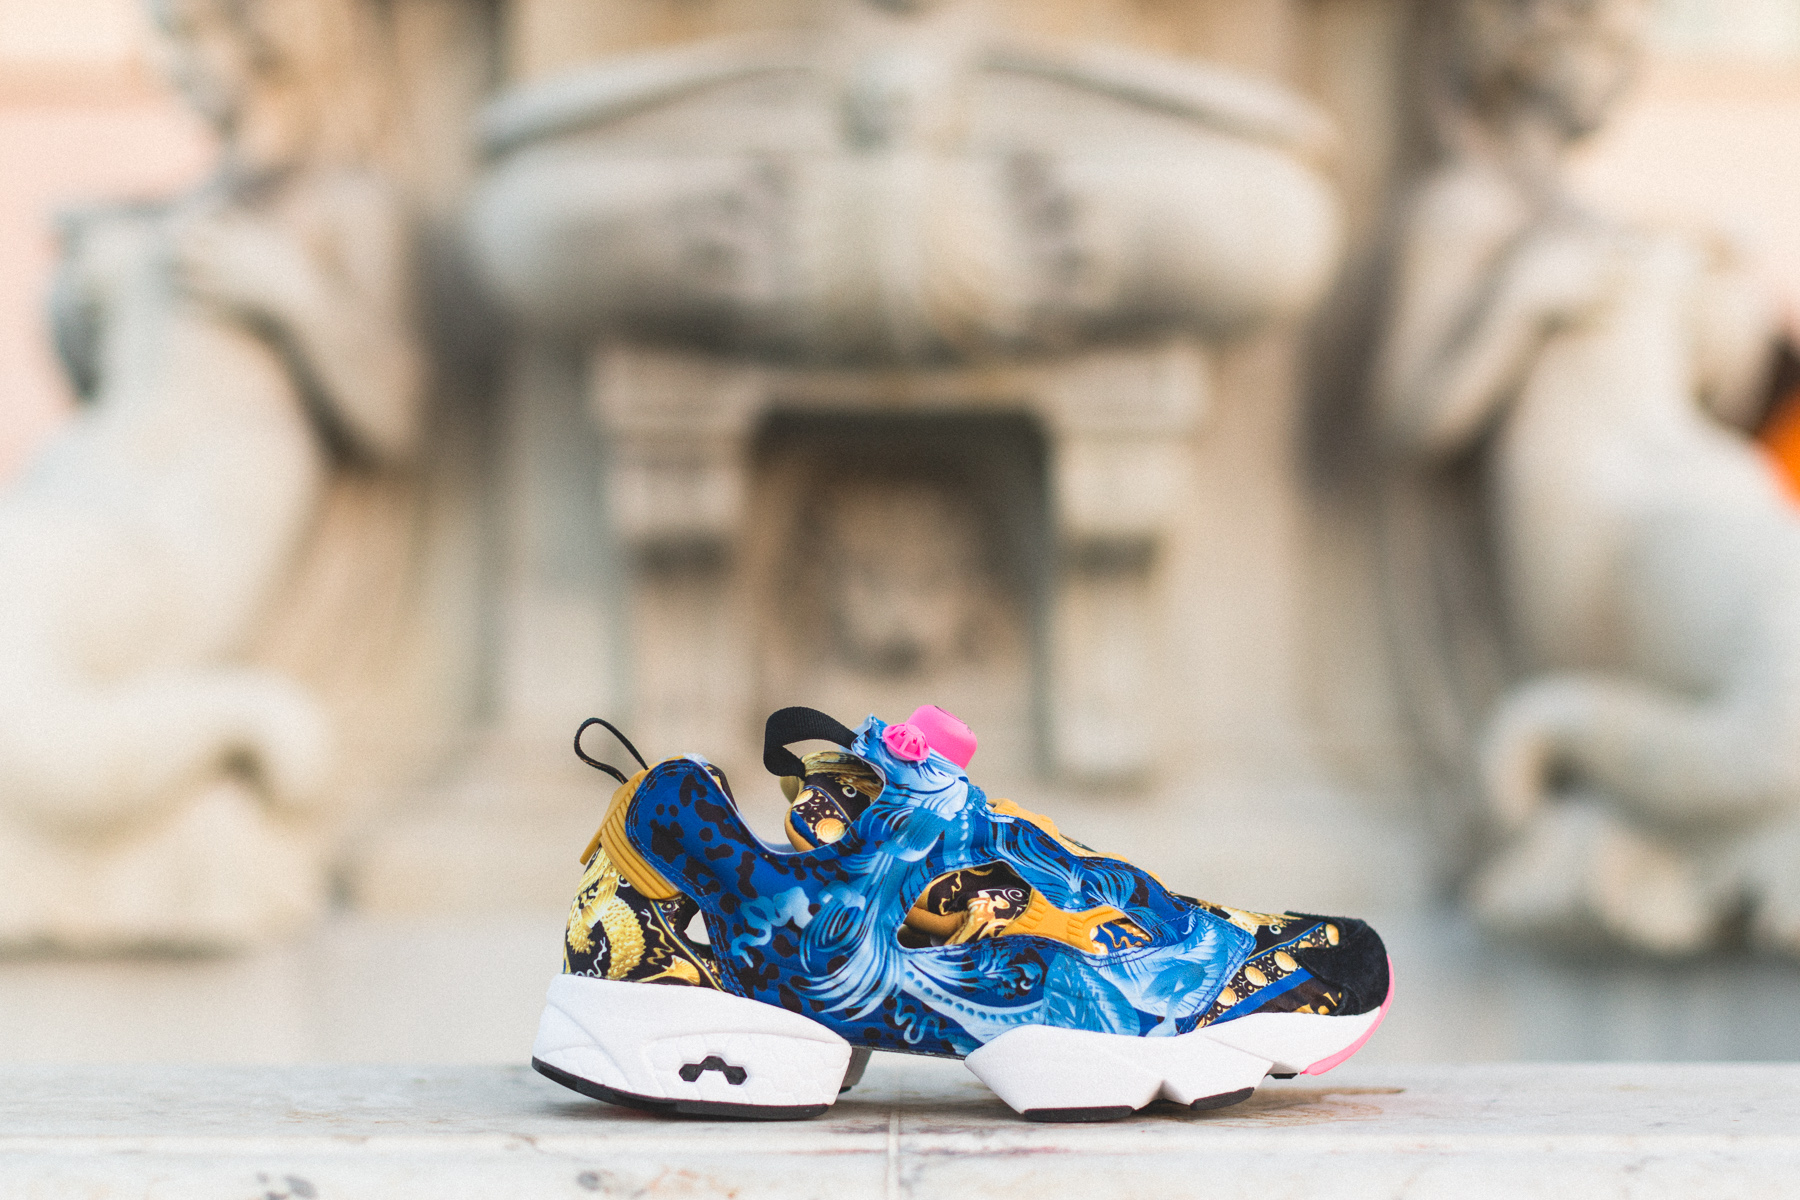 Concepts x Reebok Instapump Fury 20th Anniversary